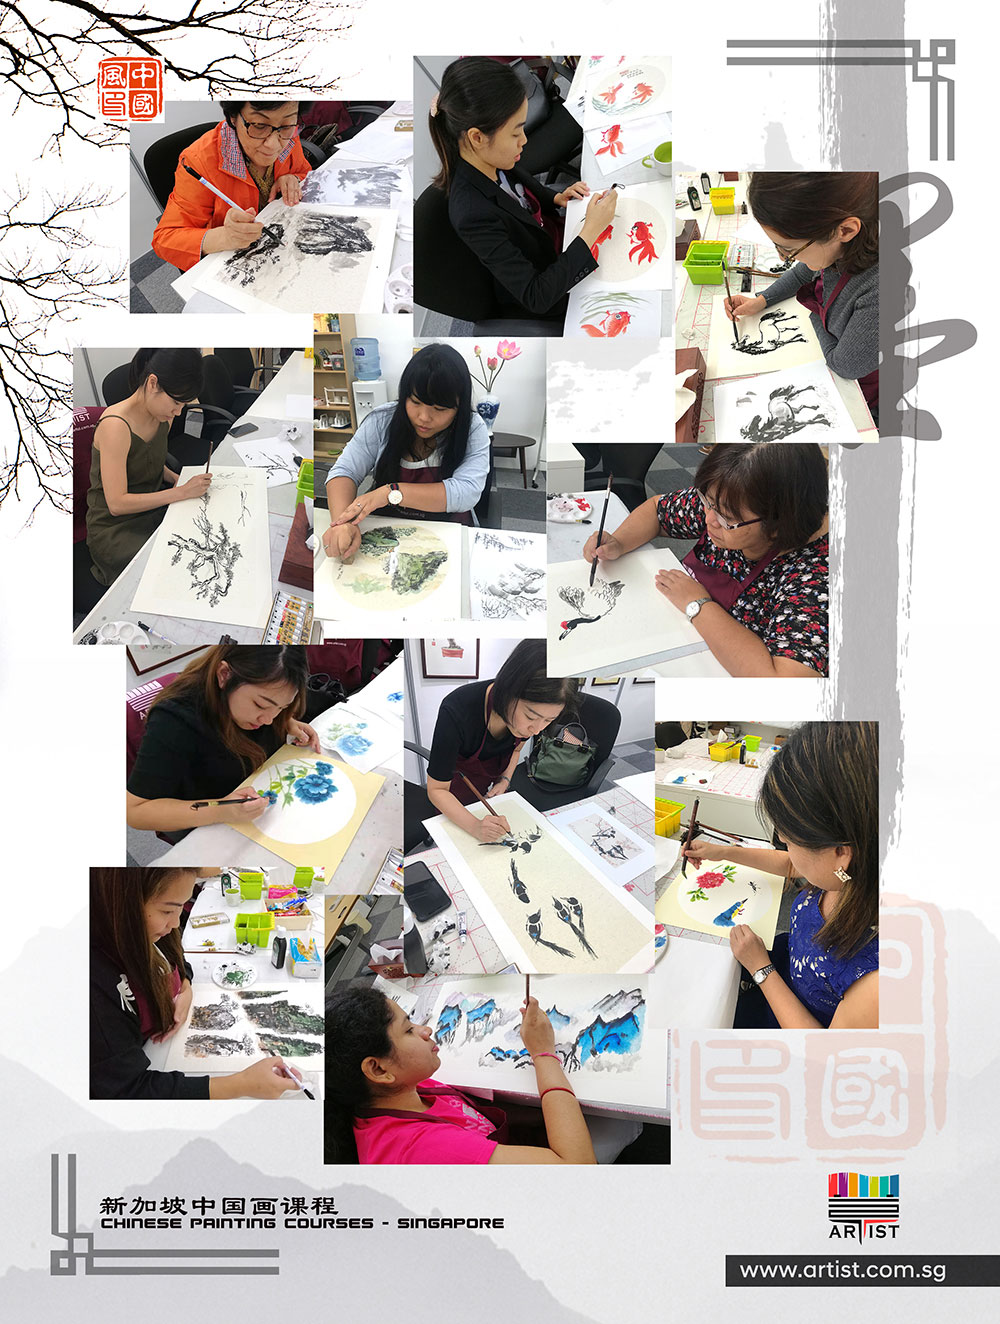 2019 Singapore Chinese Painting Exhibition - Practising